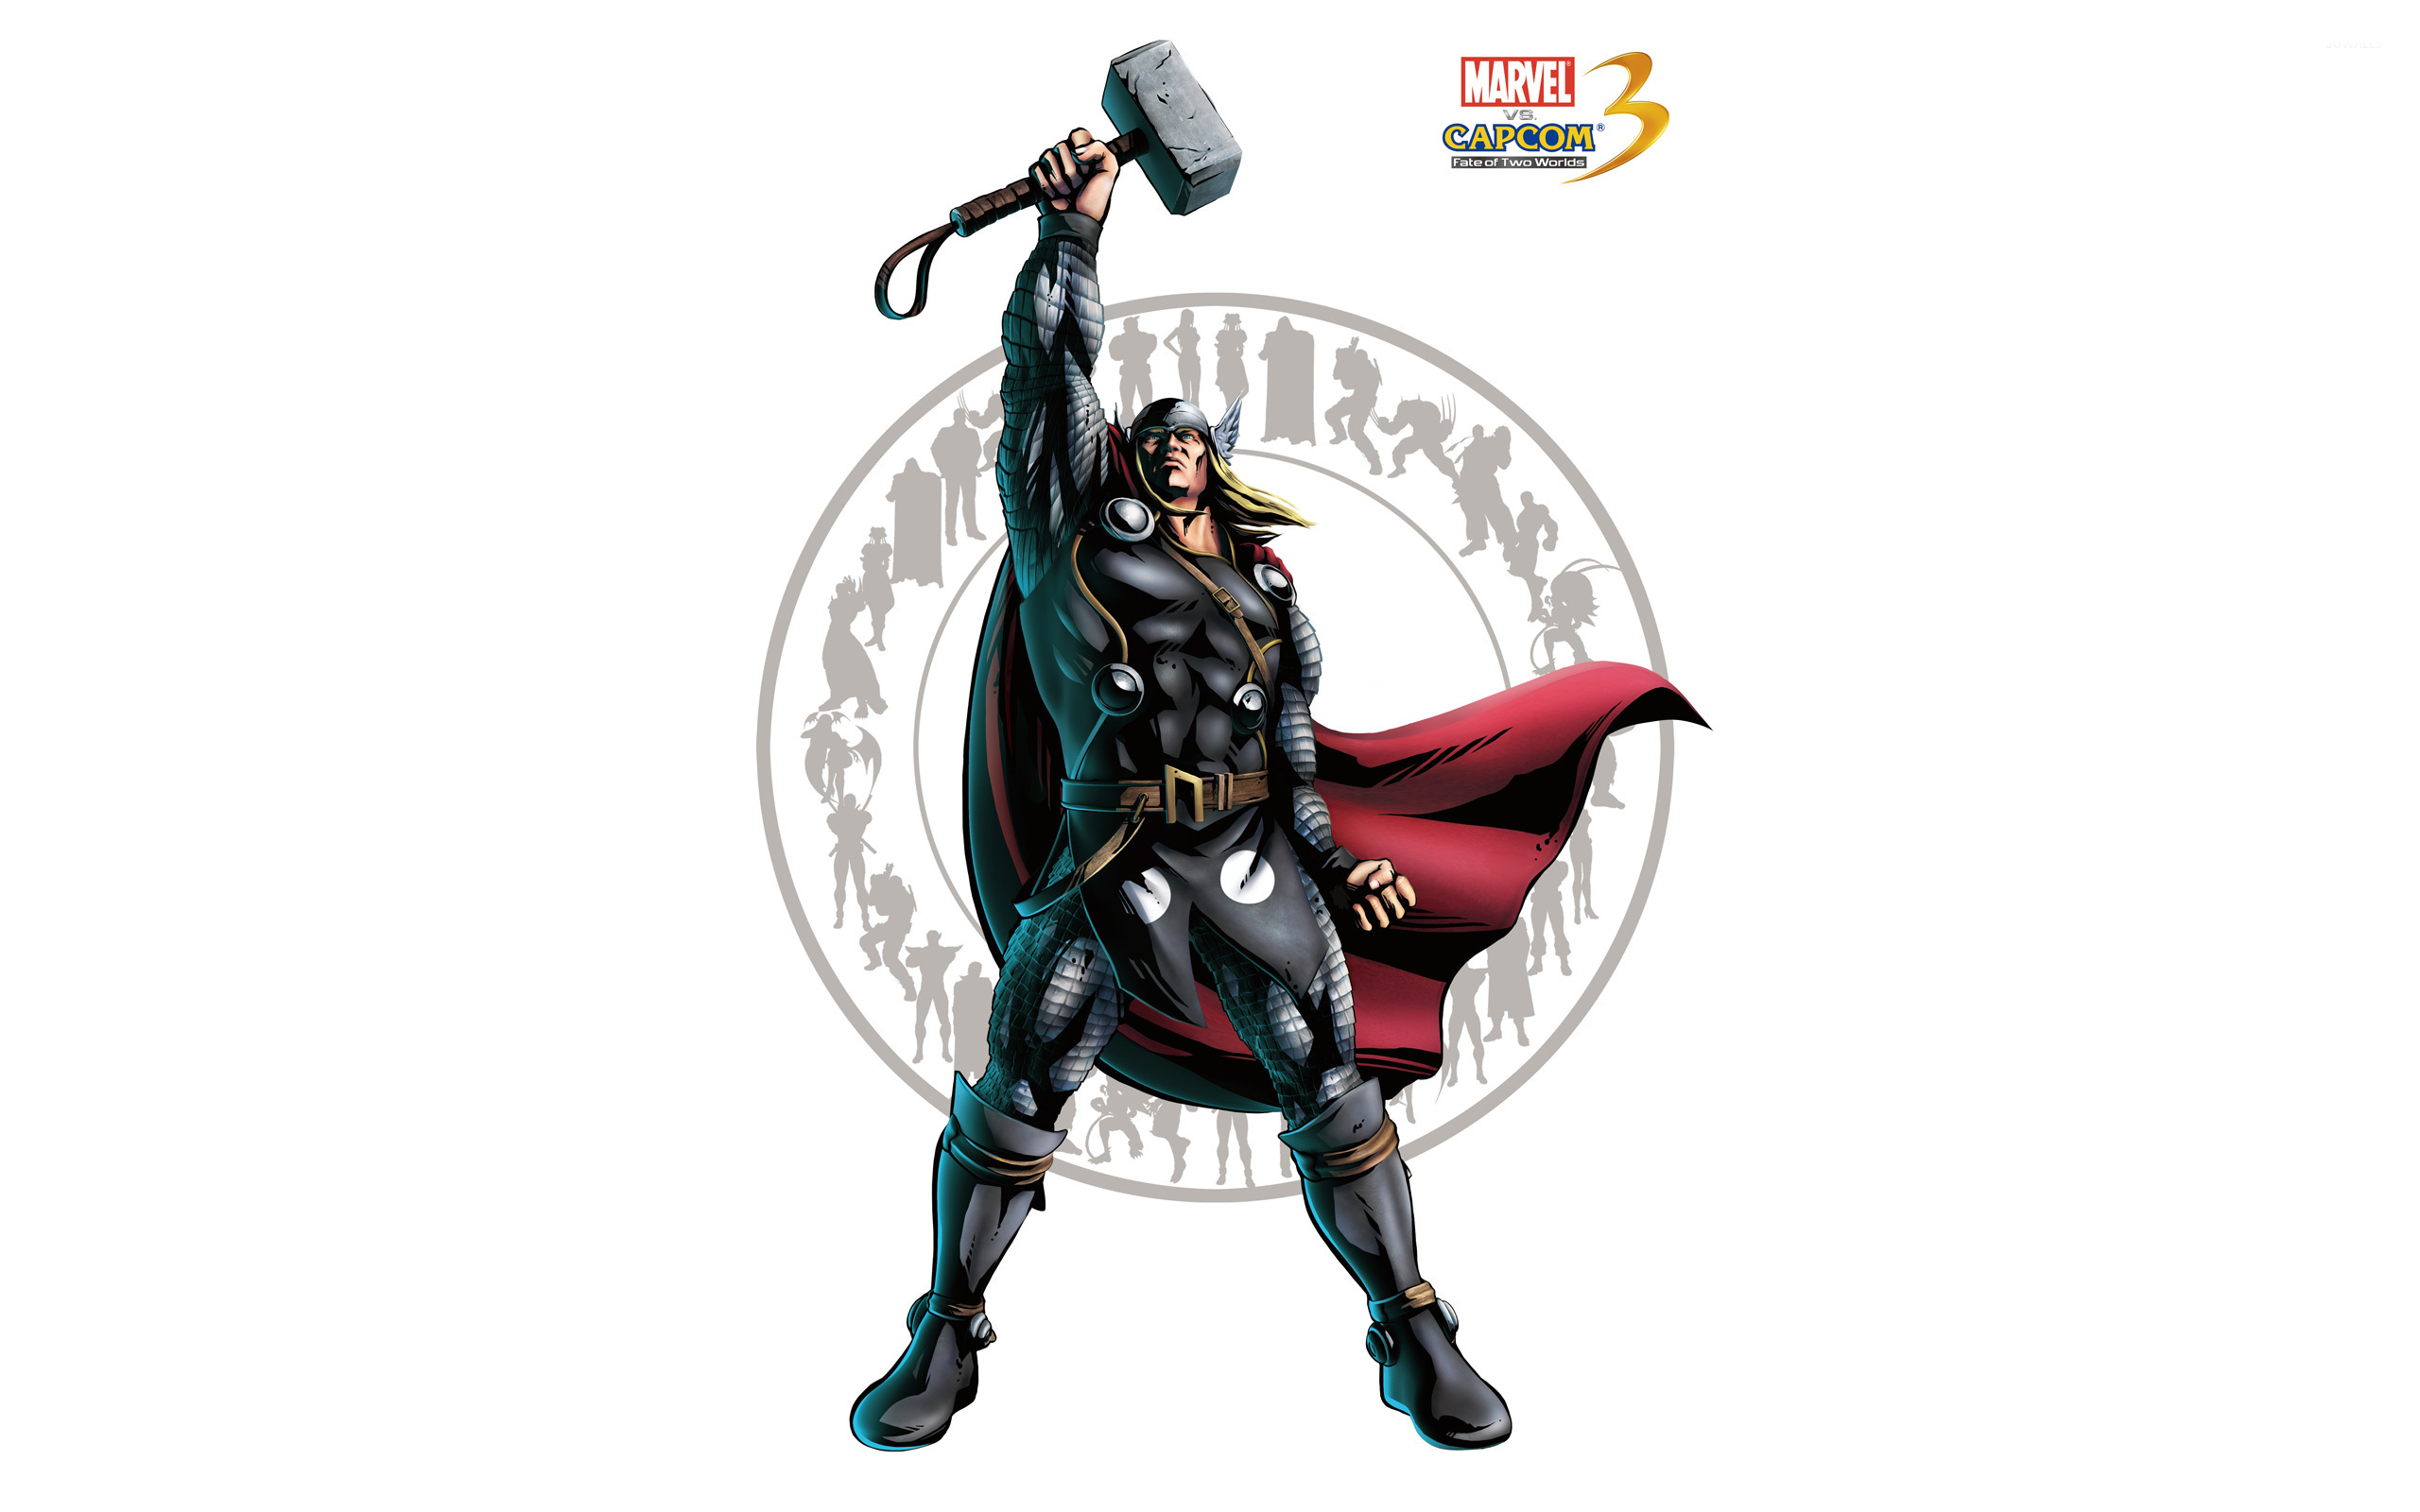 Popular Wallpaper Marvel Odin - marvel-vs-capcom-3-thor-7738-2560x1600  Collection_784129.jpg